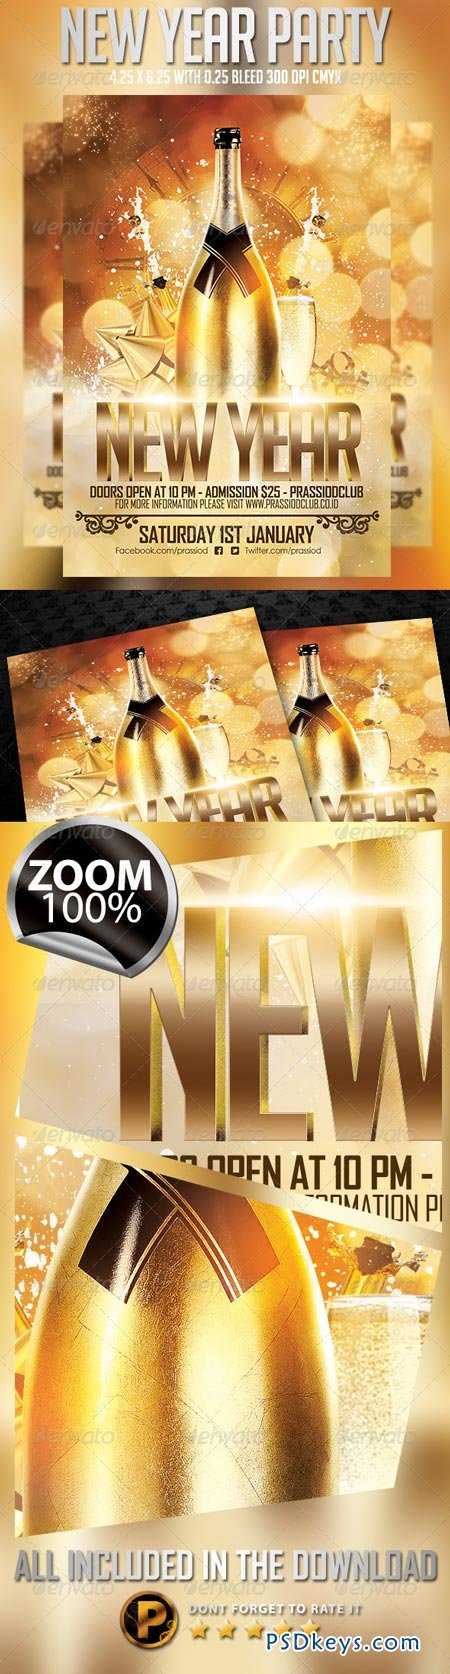 New Year Party Flyer Template 6327693 » Free Download Photoshop